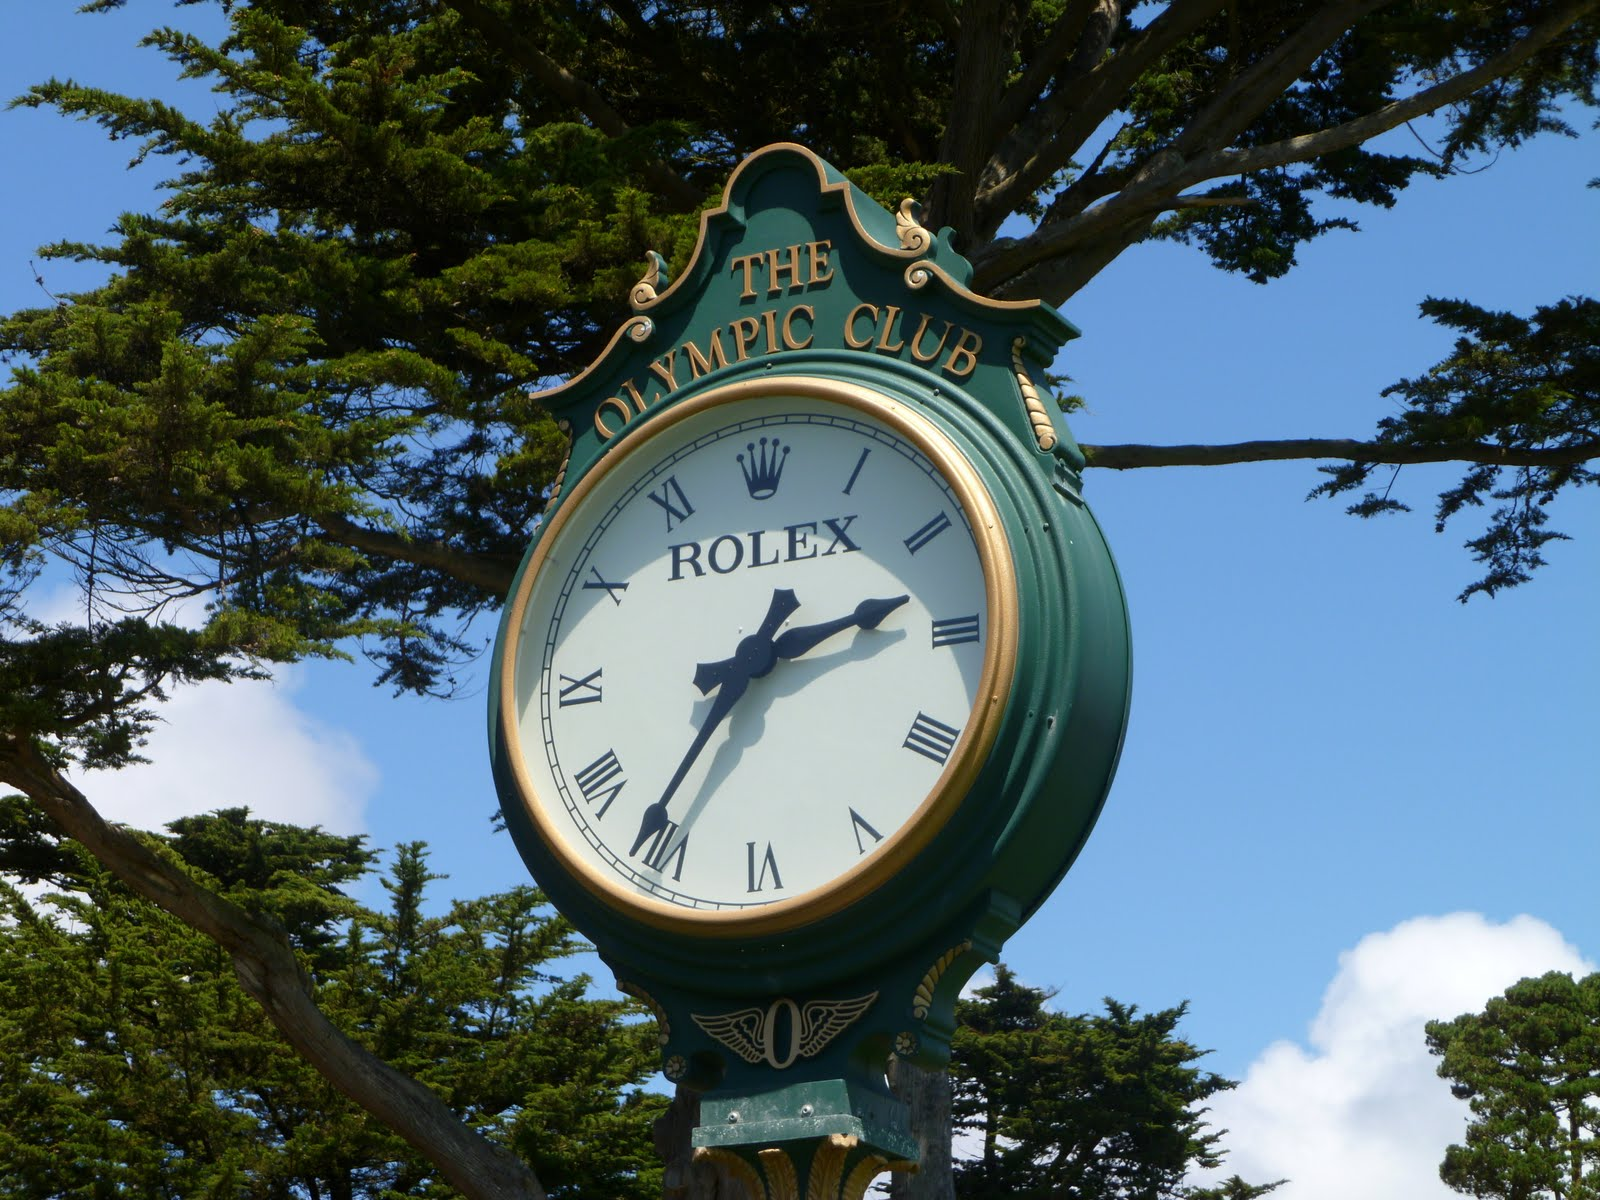 Rolex Rankings formula changes to add bonus points for up